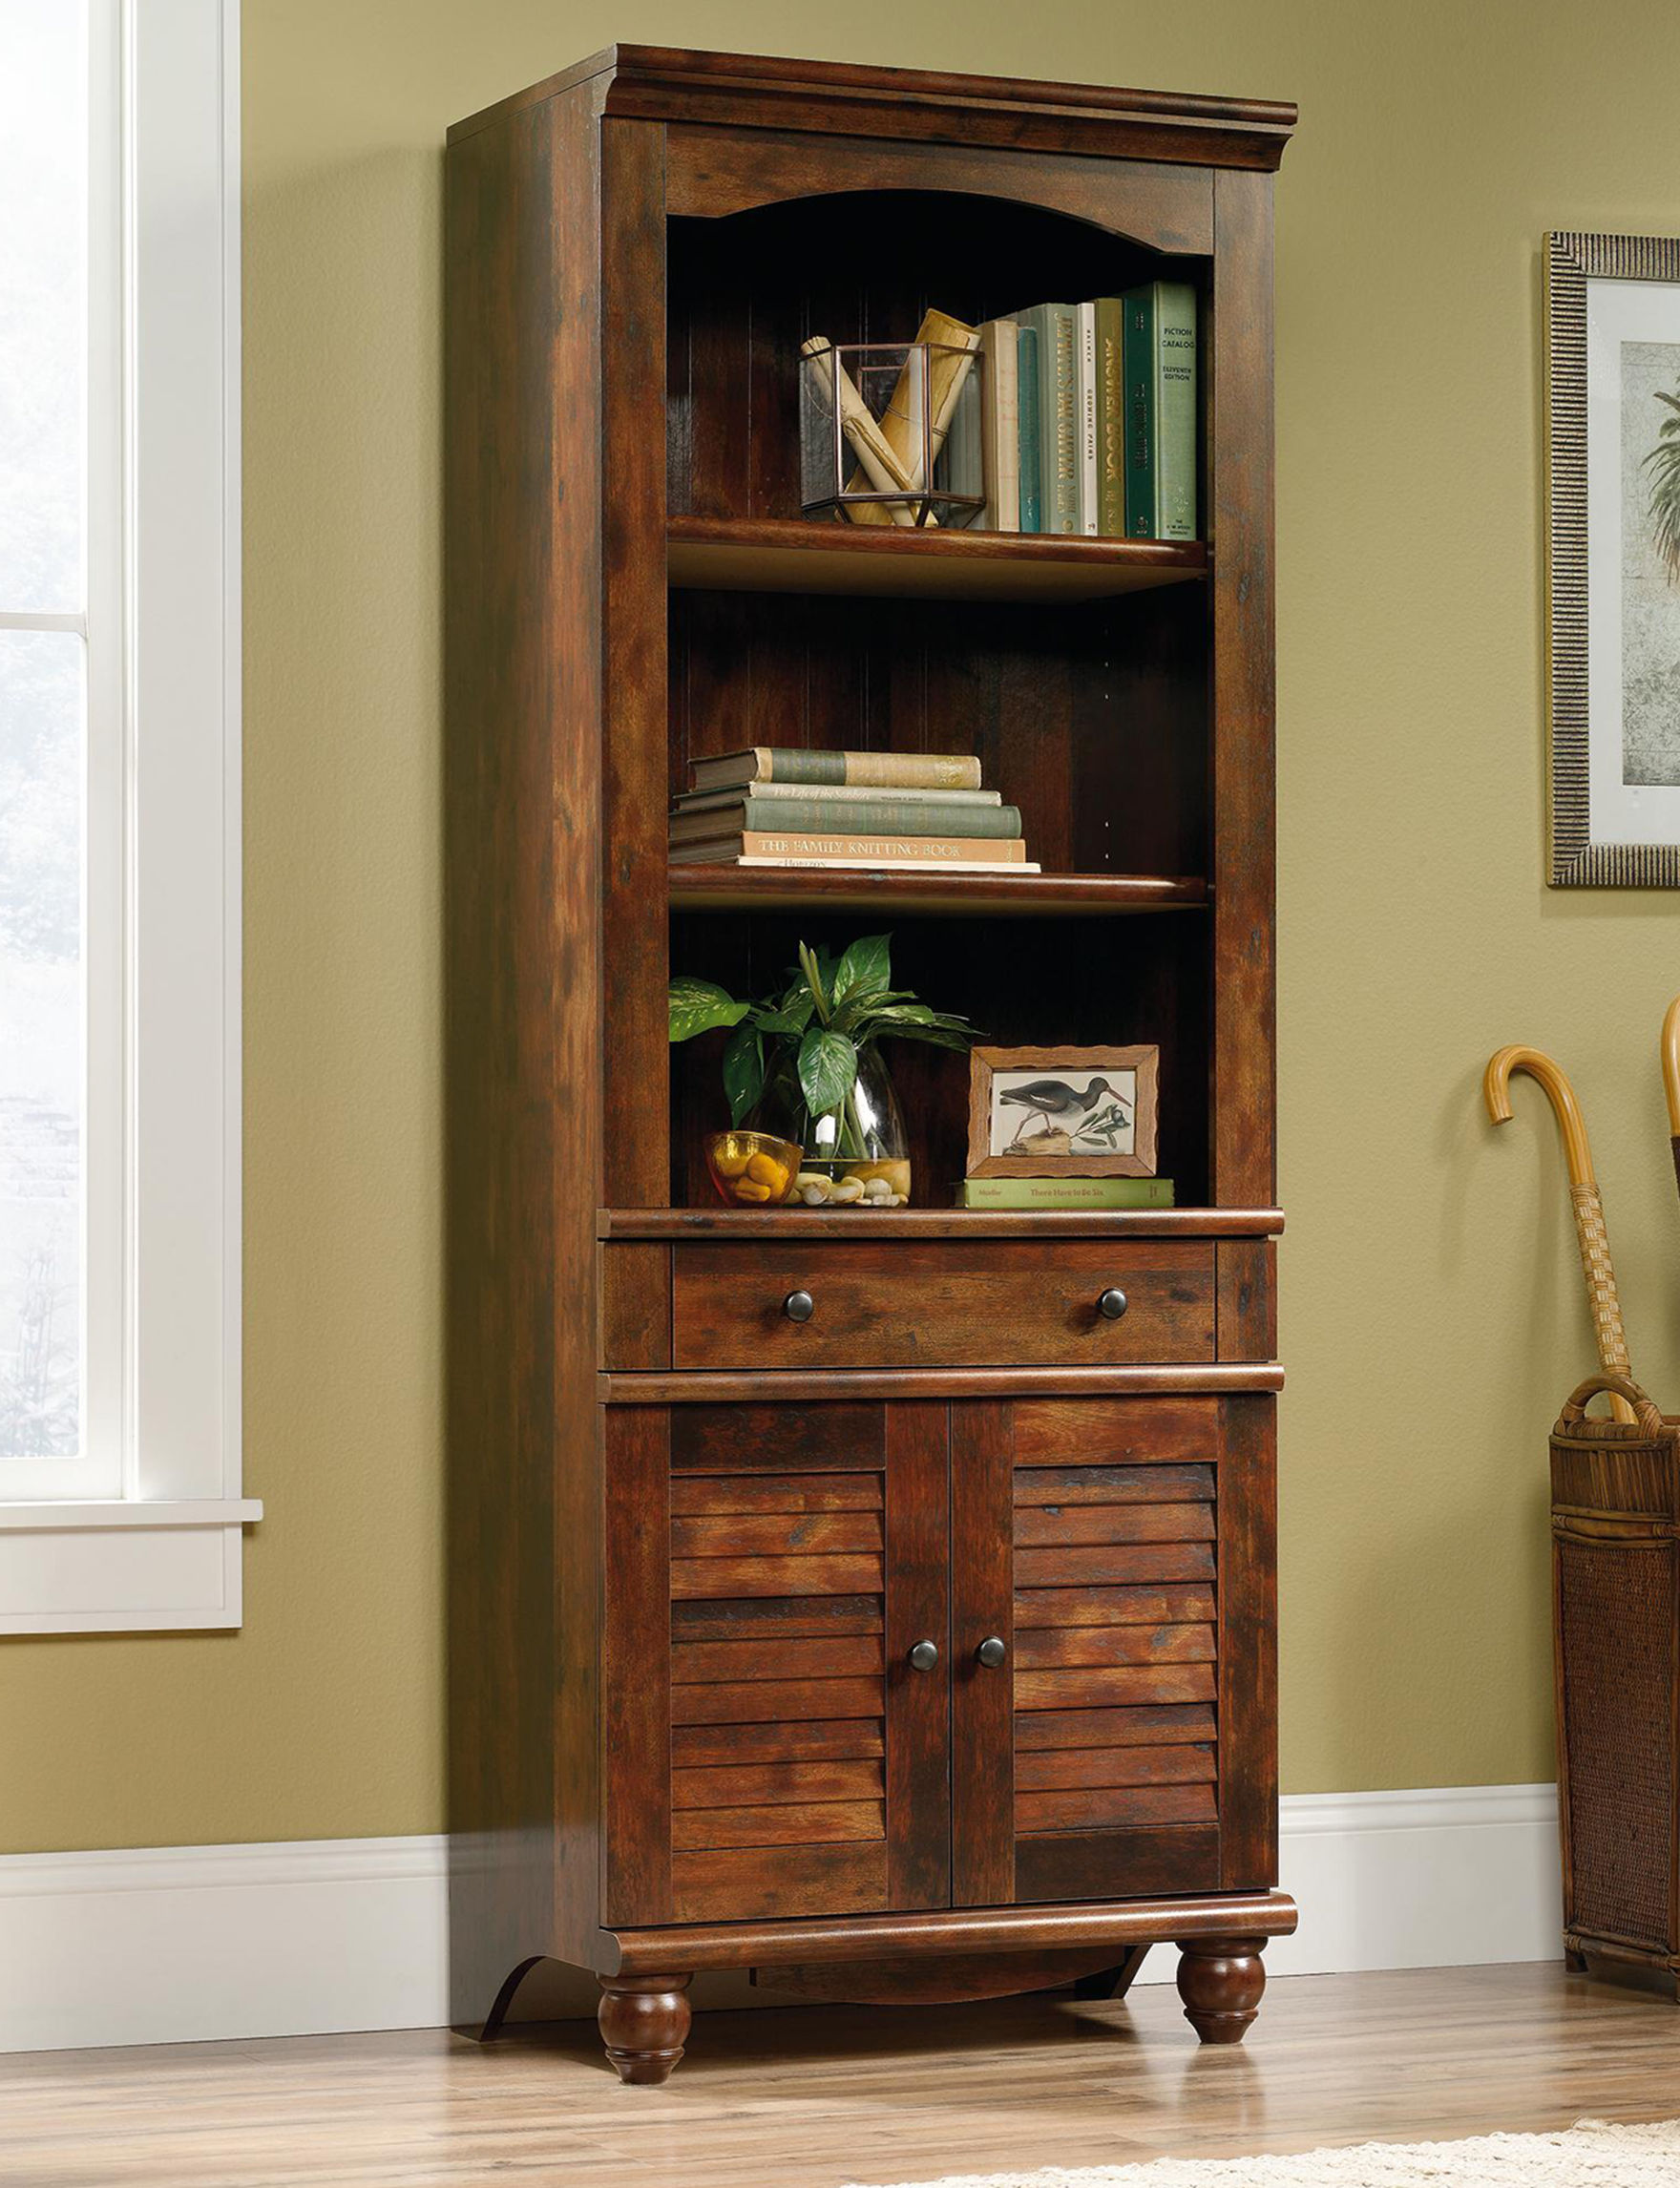 Sauder Cherry Bookcases & Shelves Cabinets & Cupboards Home Office Furniture Living Room Furniture